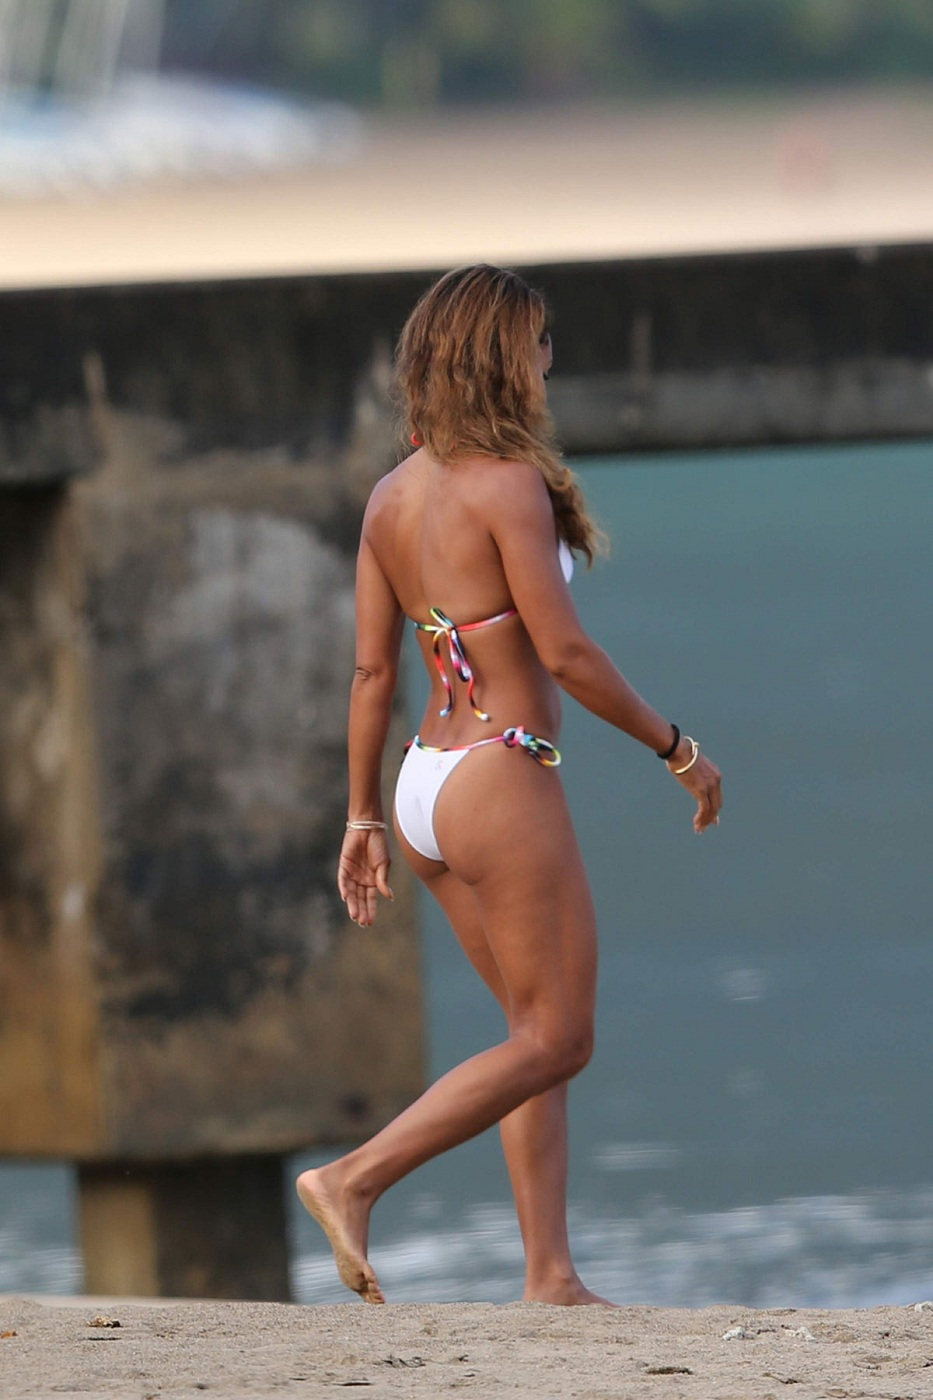 JADA-PINKETT-SMITH-in-Bikini-at-a-Beach-in-Hawaii-13.jpg - 234.02 KB